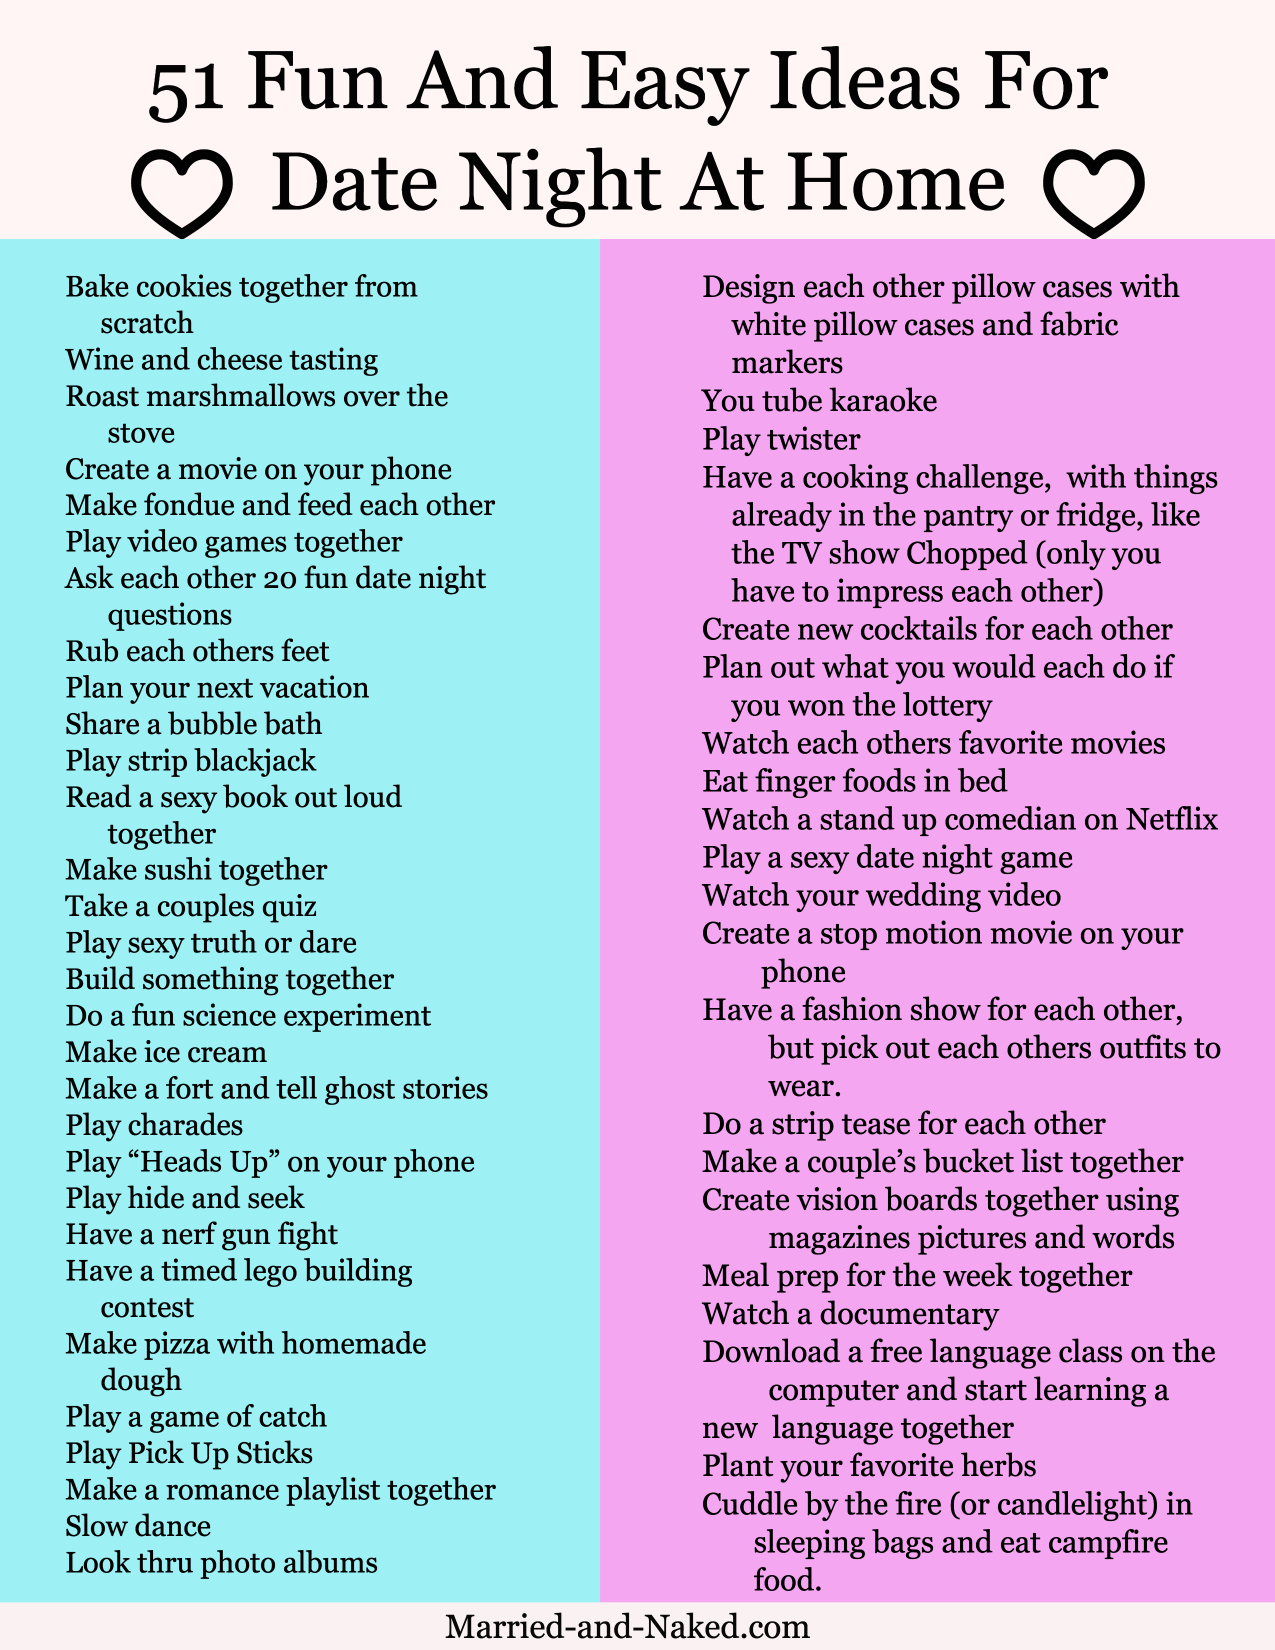 Date Night Questions For Married Couples - Married and Naked ...